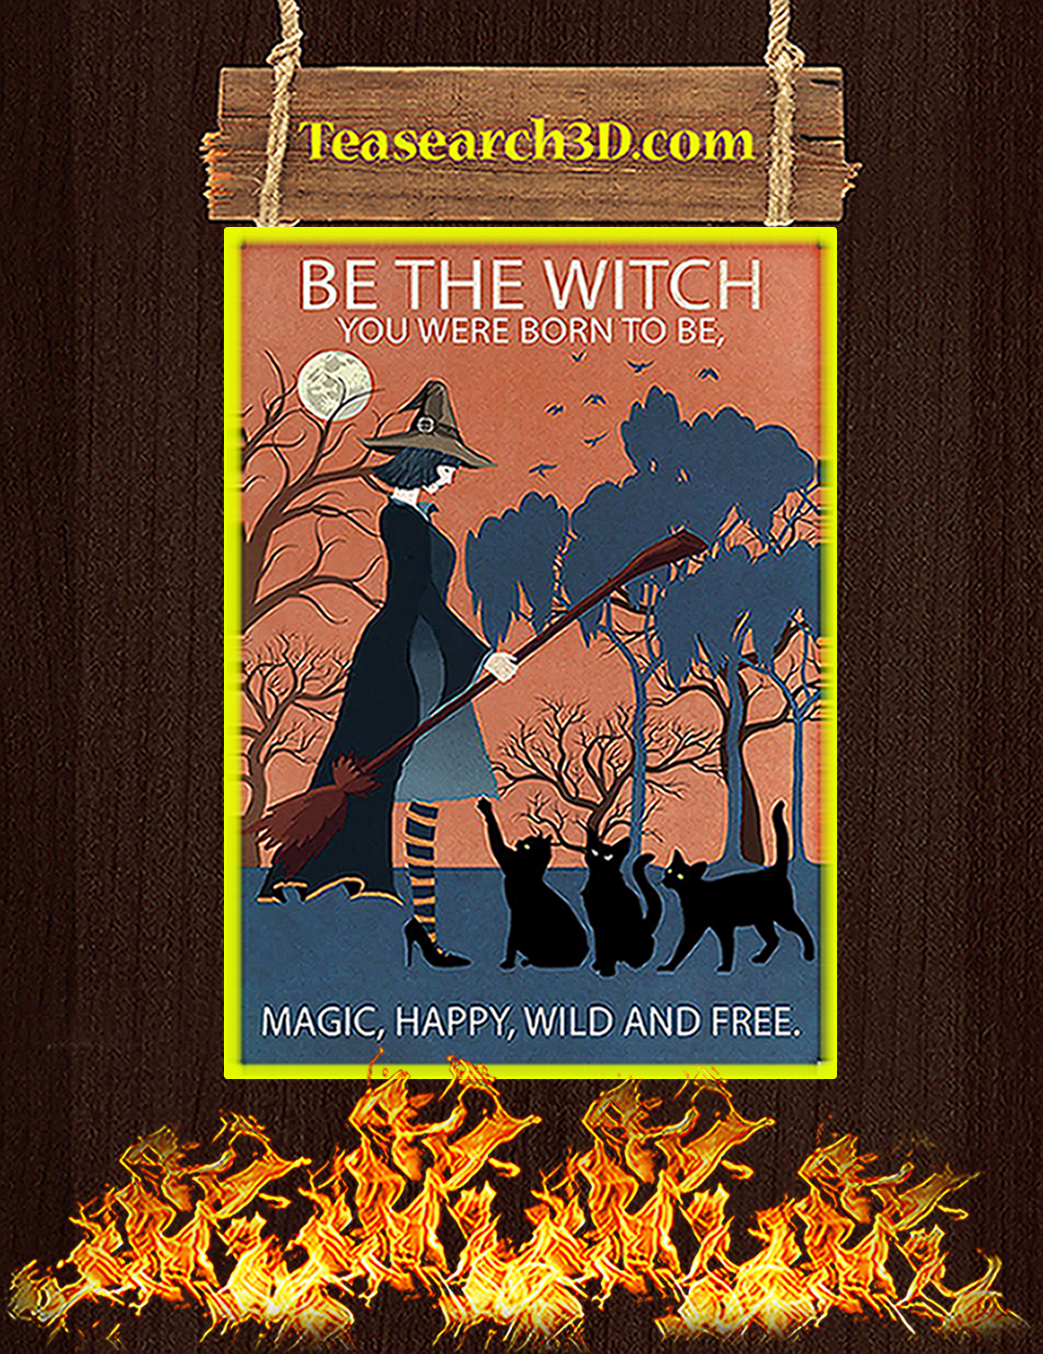 Be the witch you were born to be magic happy wild and free poster A1